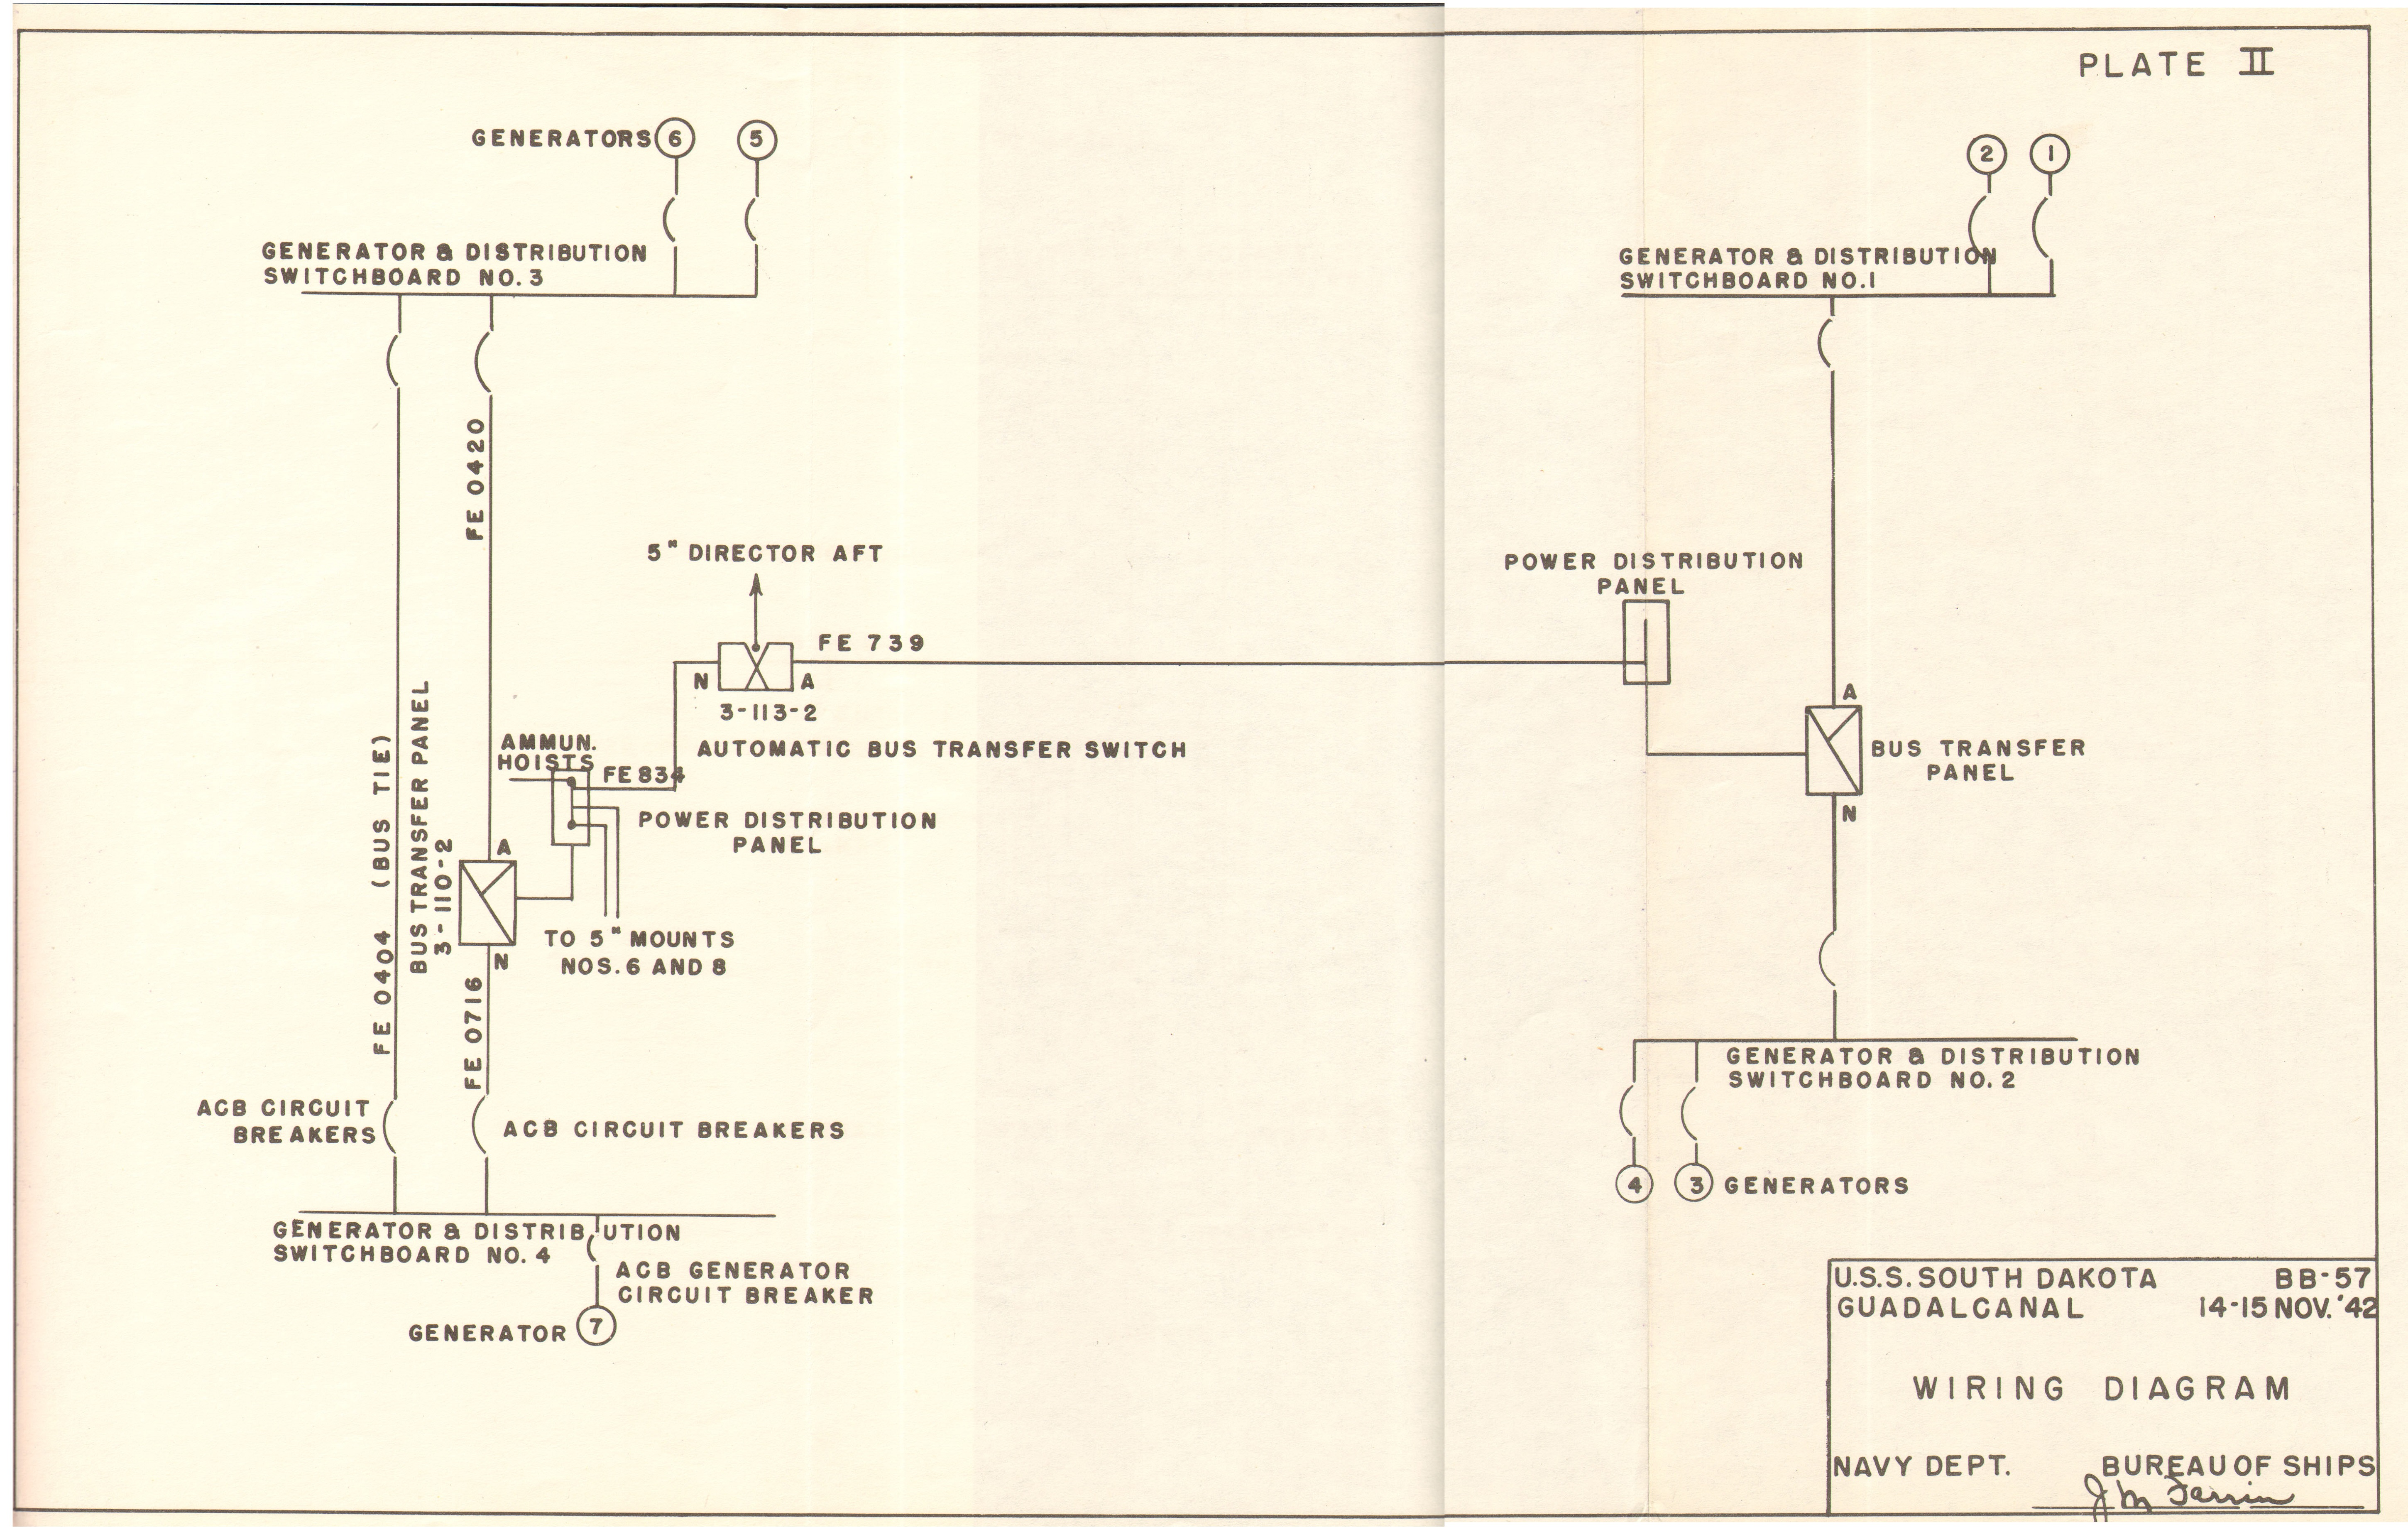 Uss South Dakota Bb57 War Damage Report No 57 Transfer Panel Wiring Diagram Click Here For A Larger Version Of This Plate